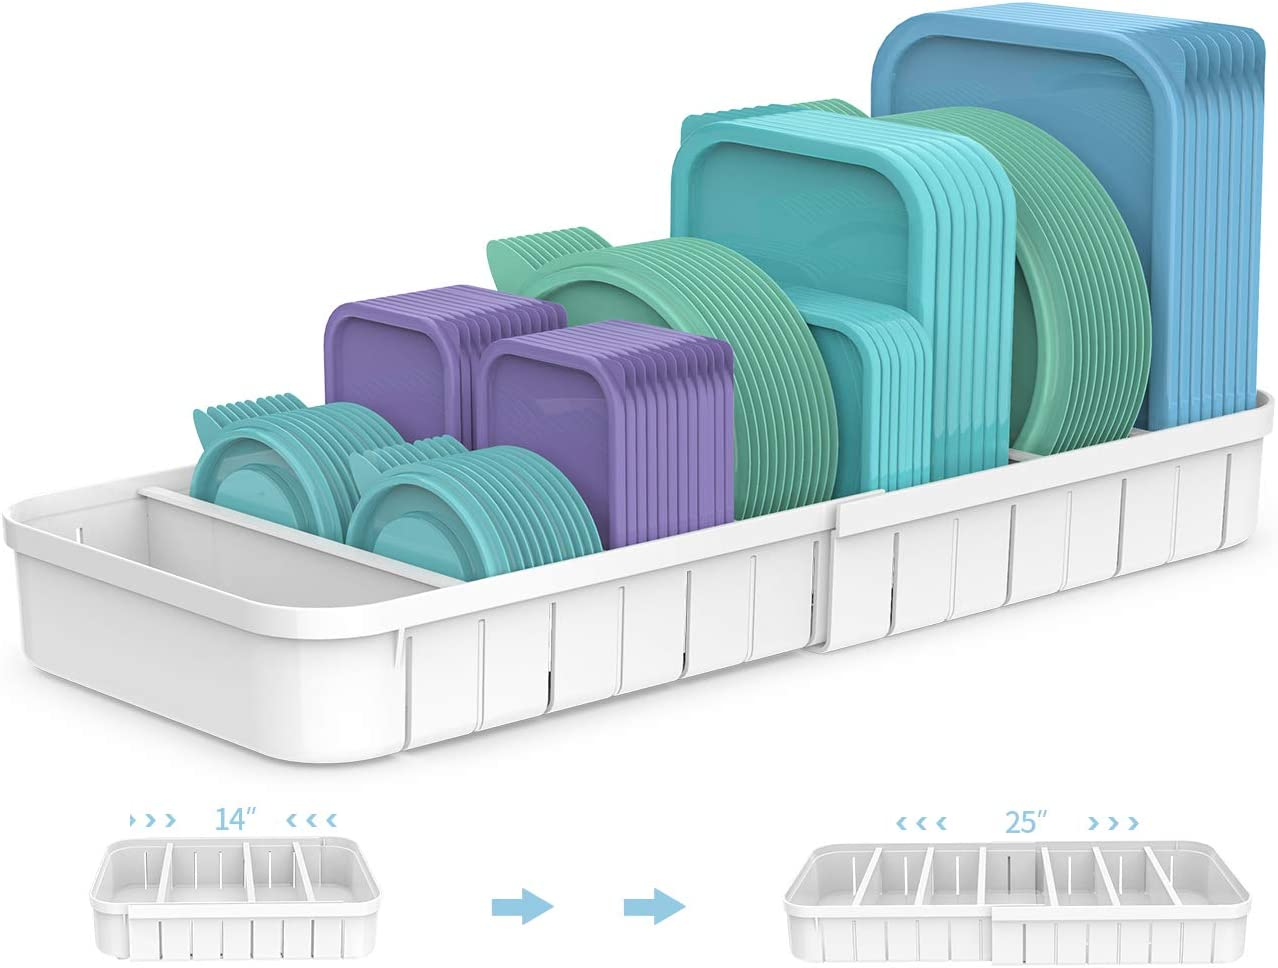 Expandable Food Container Lid Organizer, Lid Storage Organizer, Plastic Lid Organizer, Lid Organizer for Cabinet, Kitchen Container Organizer, Food Storage Lid Organizer